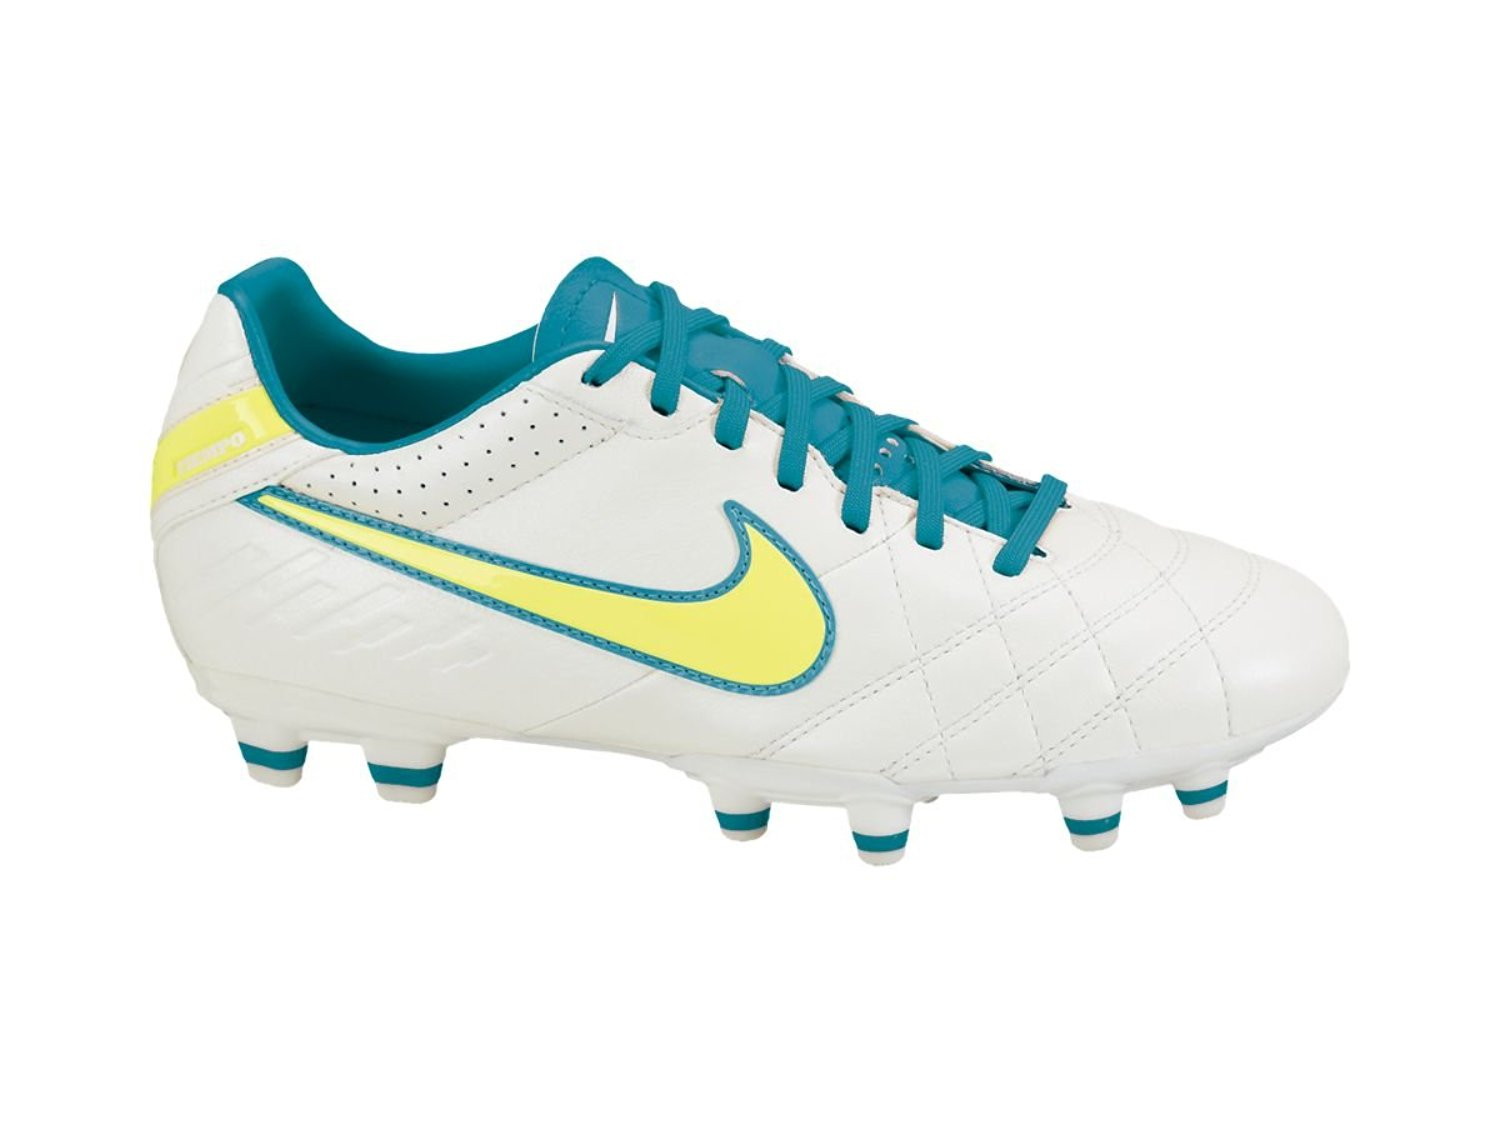 Get Quotations · Nike Women s Tiempo Mystic IV FG - Metallic Silv a85b0f98200bb